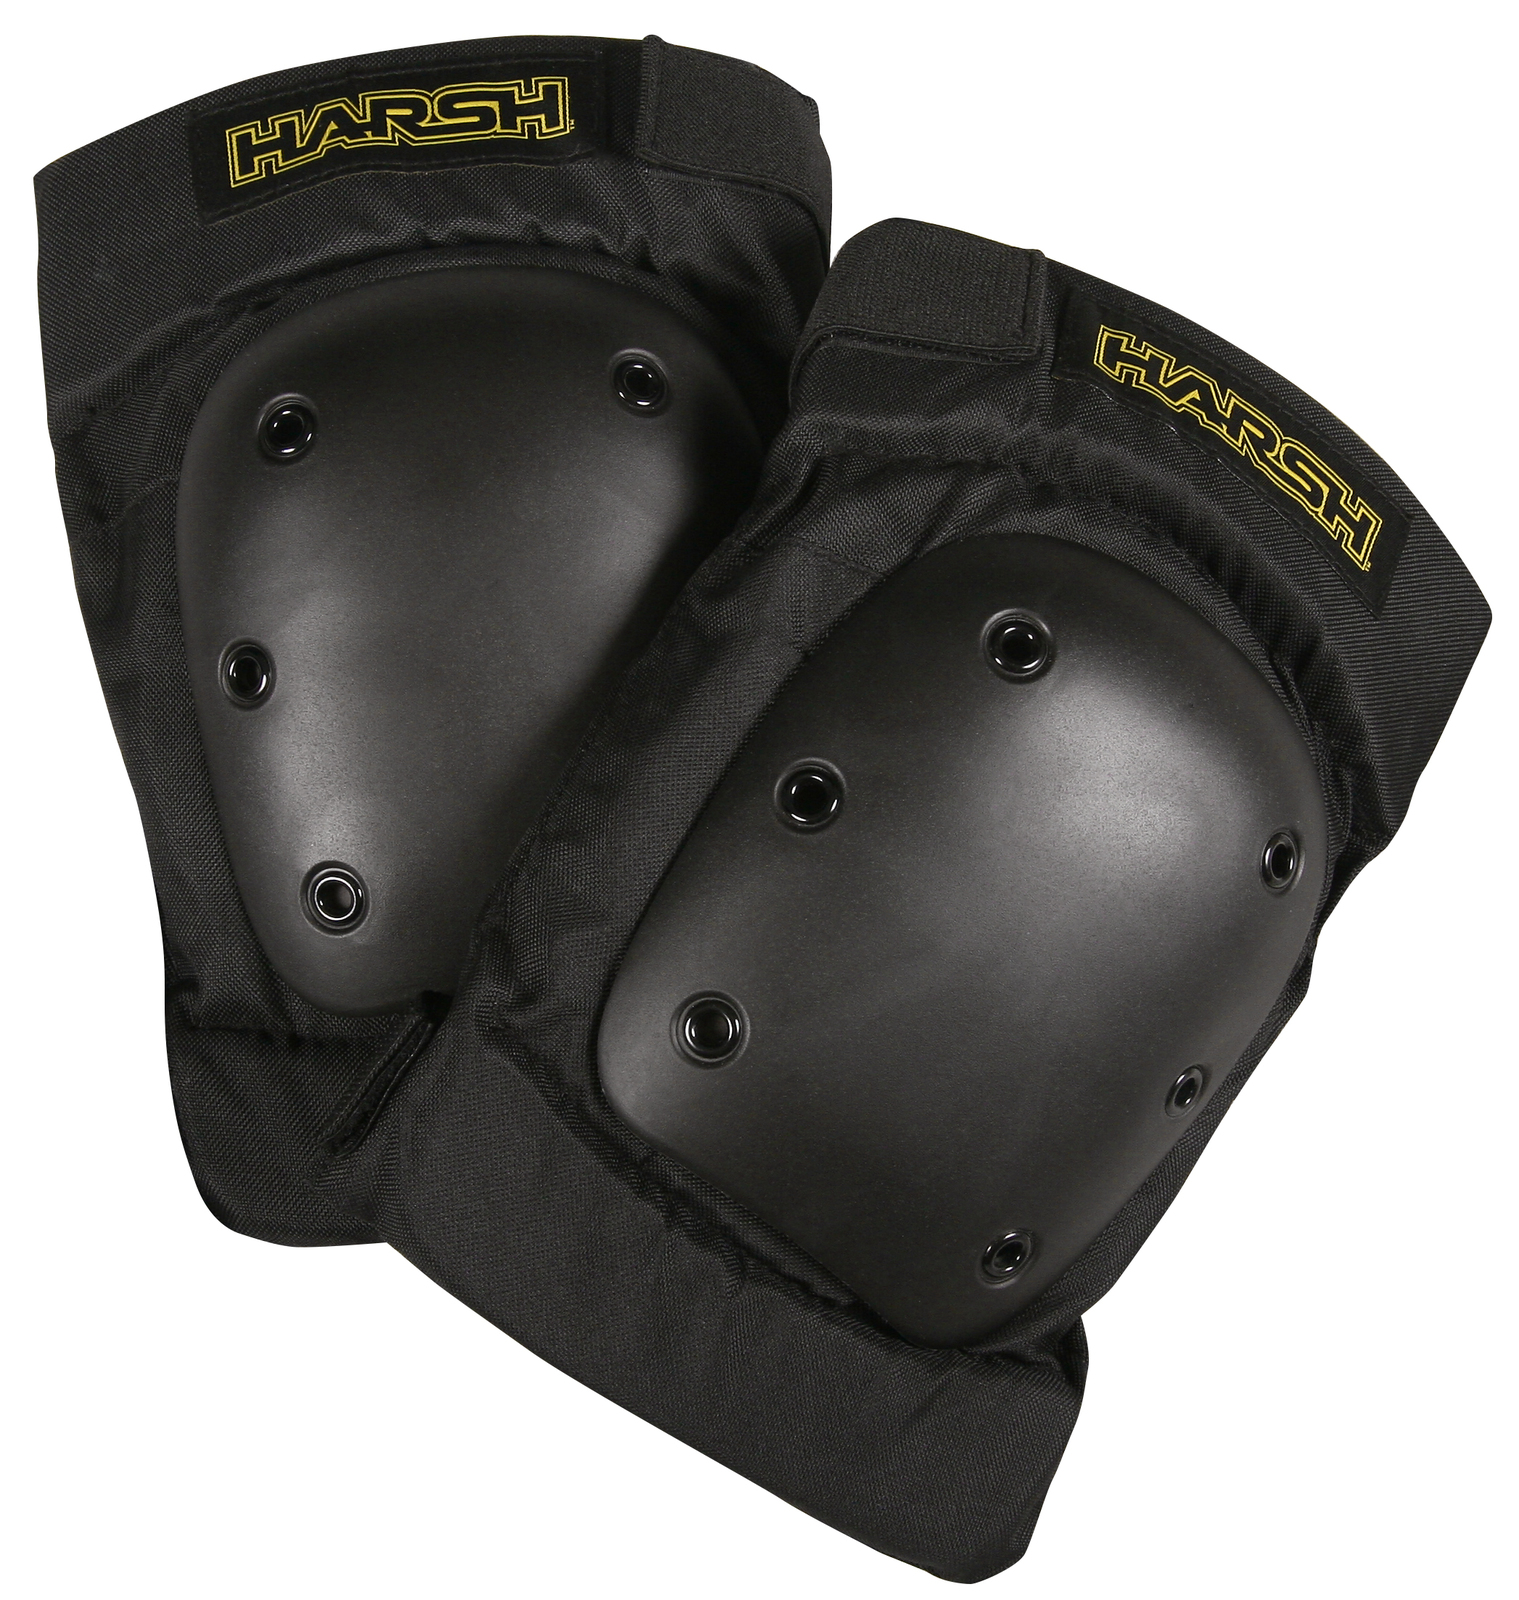 Harsh: Pro-Park - Knee & Elbow Combo Set (Adult/Medium) image